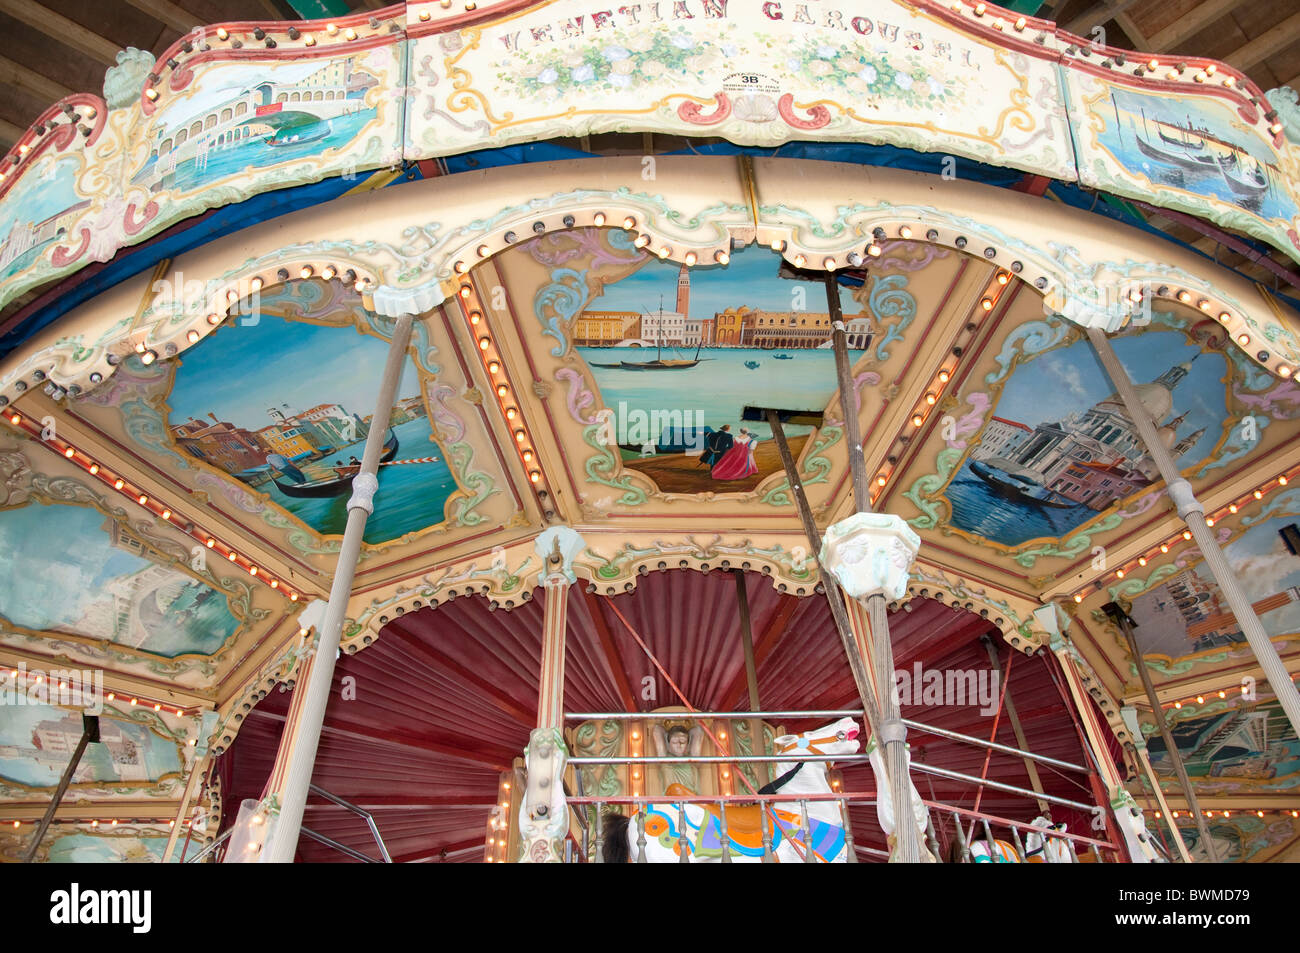 The carousel of the Central Pier in Blackpool on the coast of Lancashire in Northern England - Stock Image